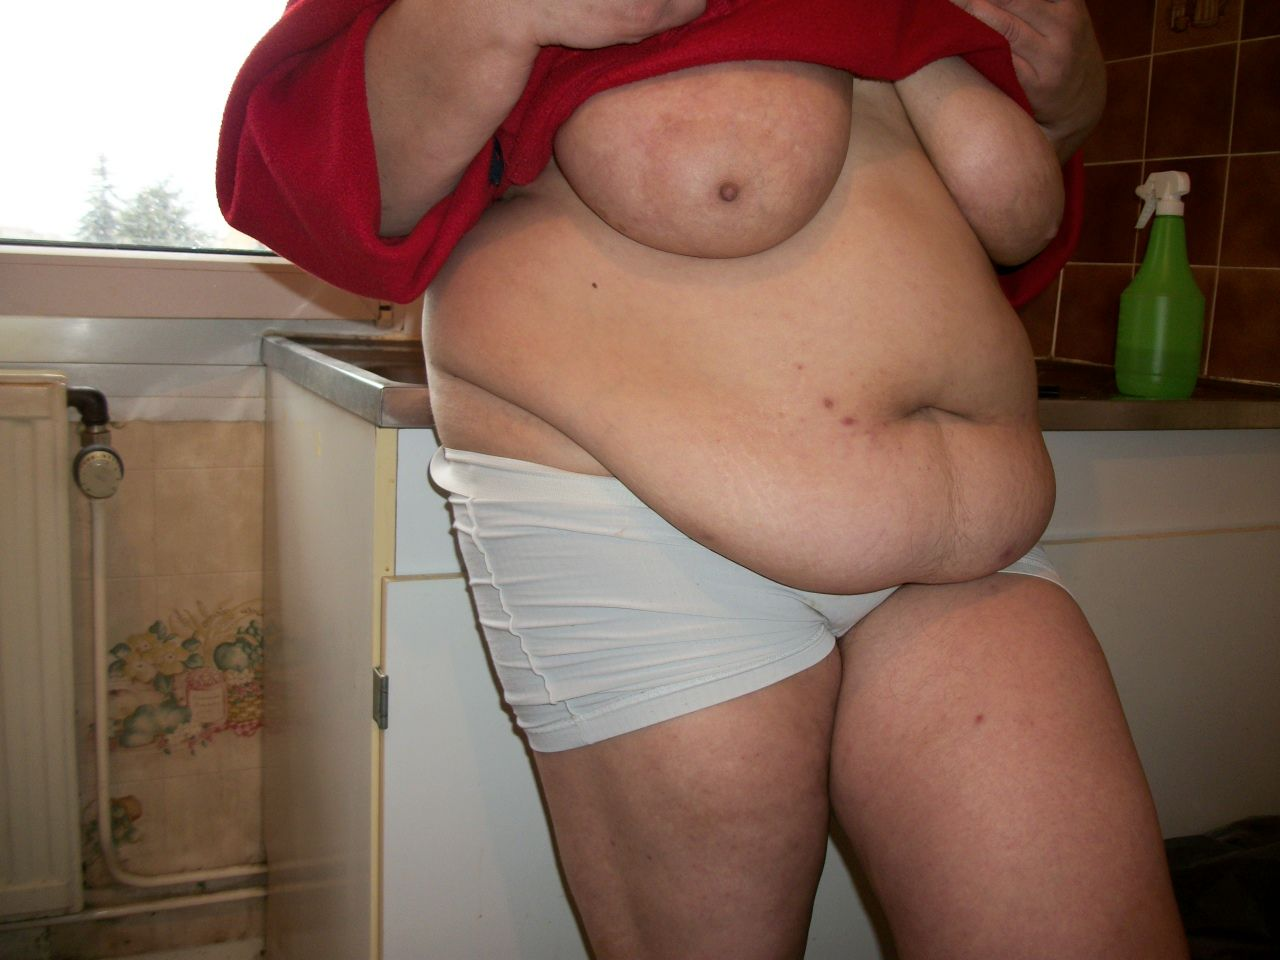 Fat women and fat girl artifishal big  porno pics